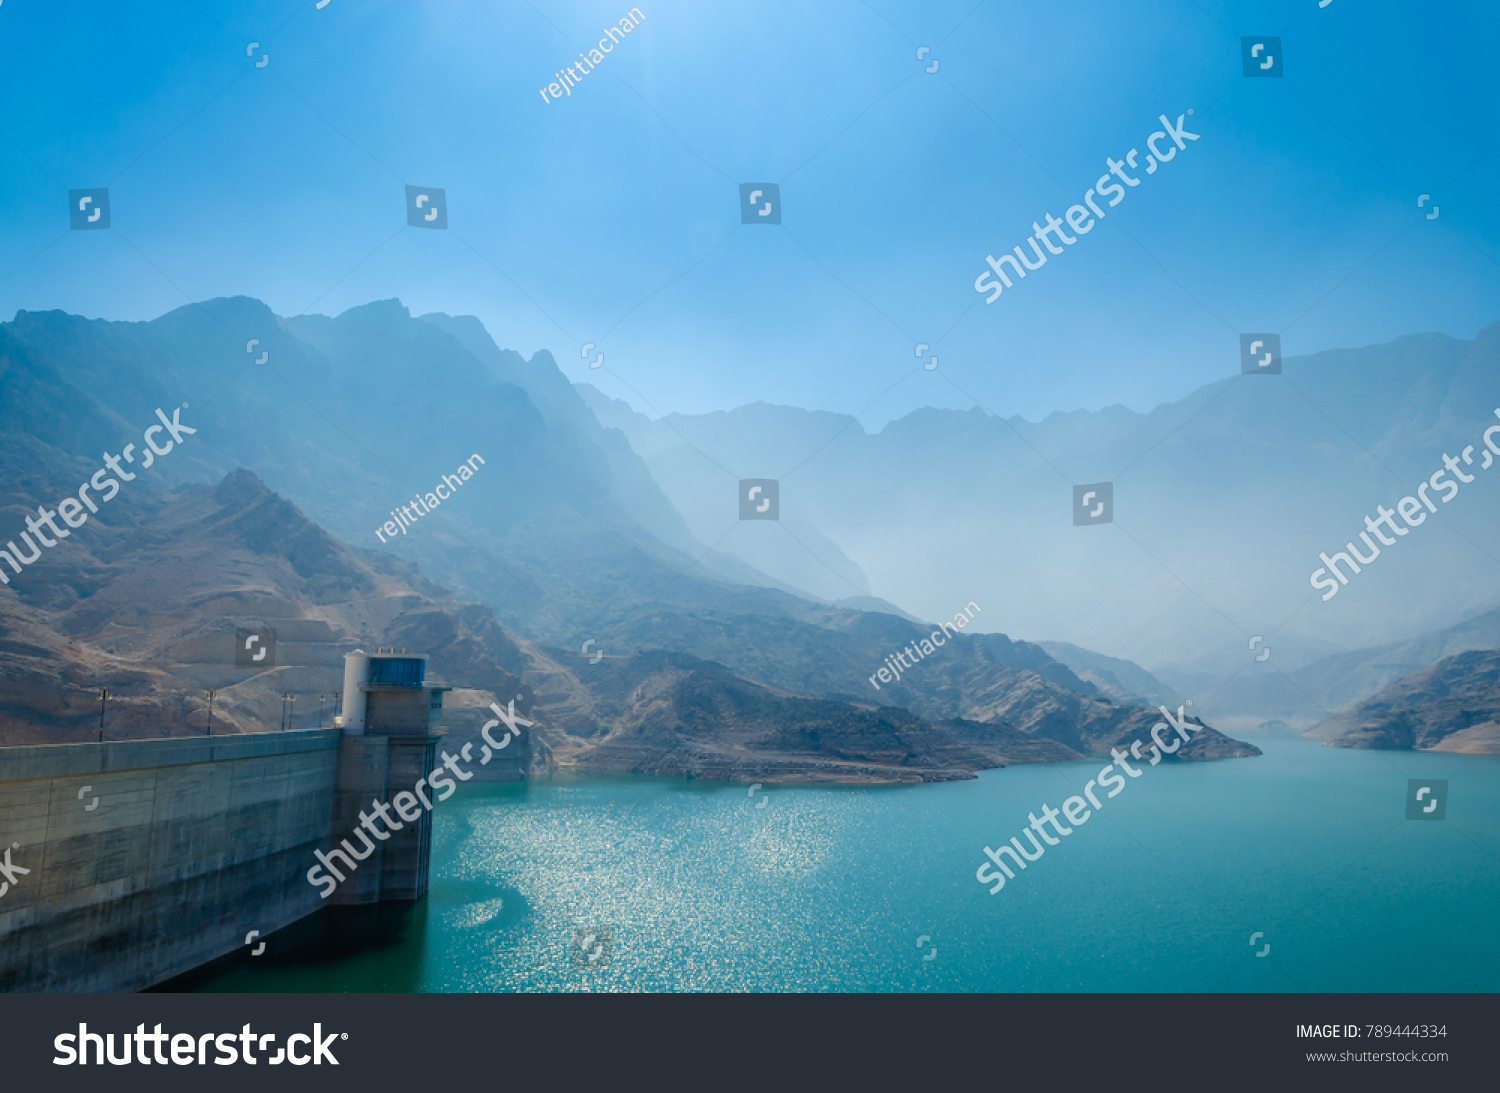 stock-photo-foggy-and-moody-landscape-of